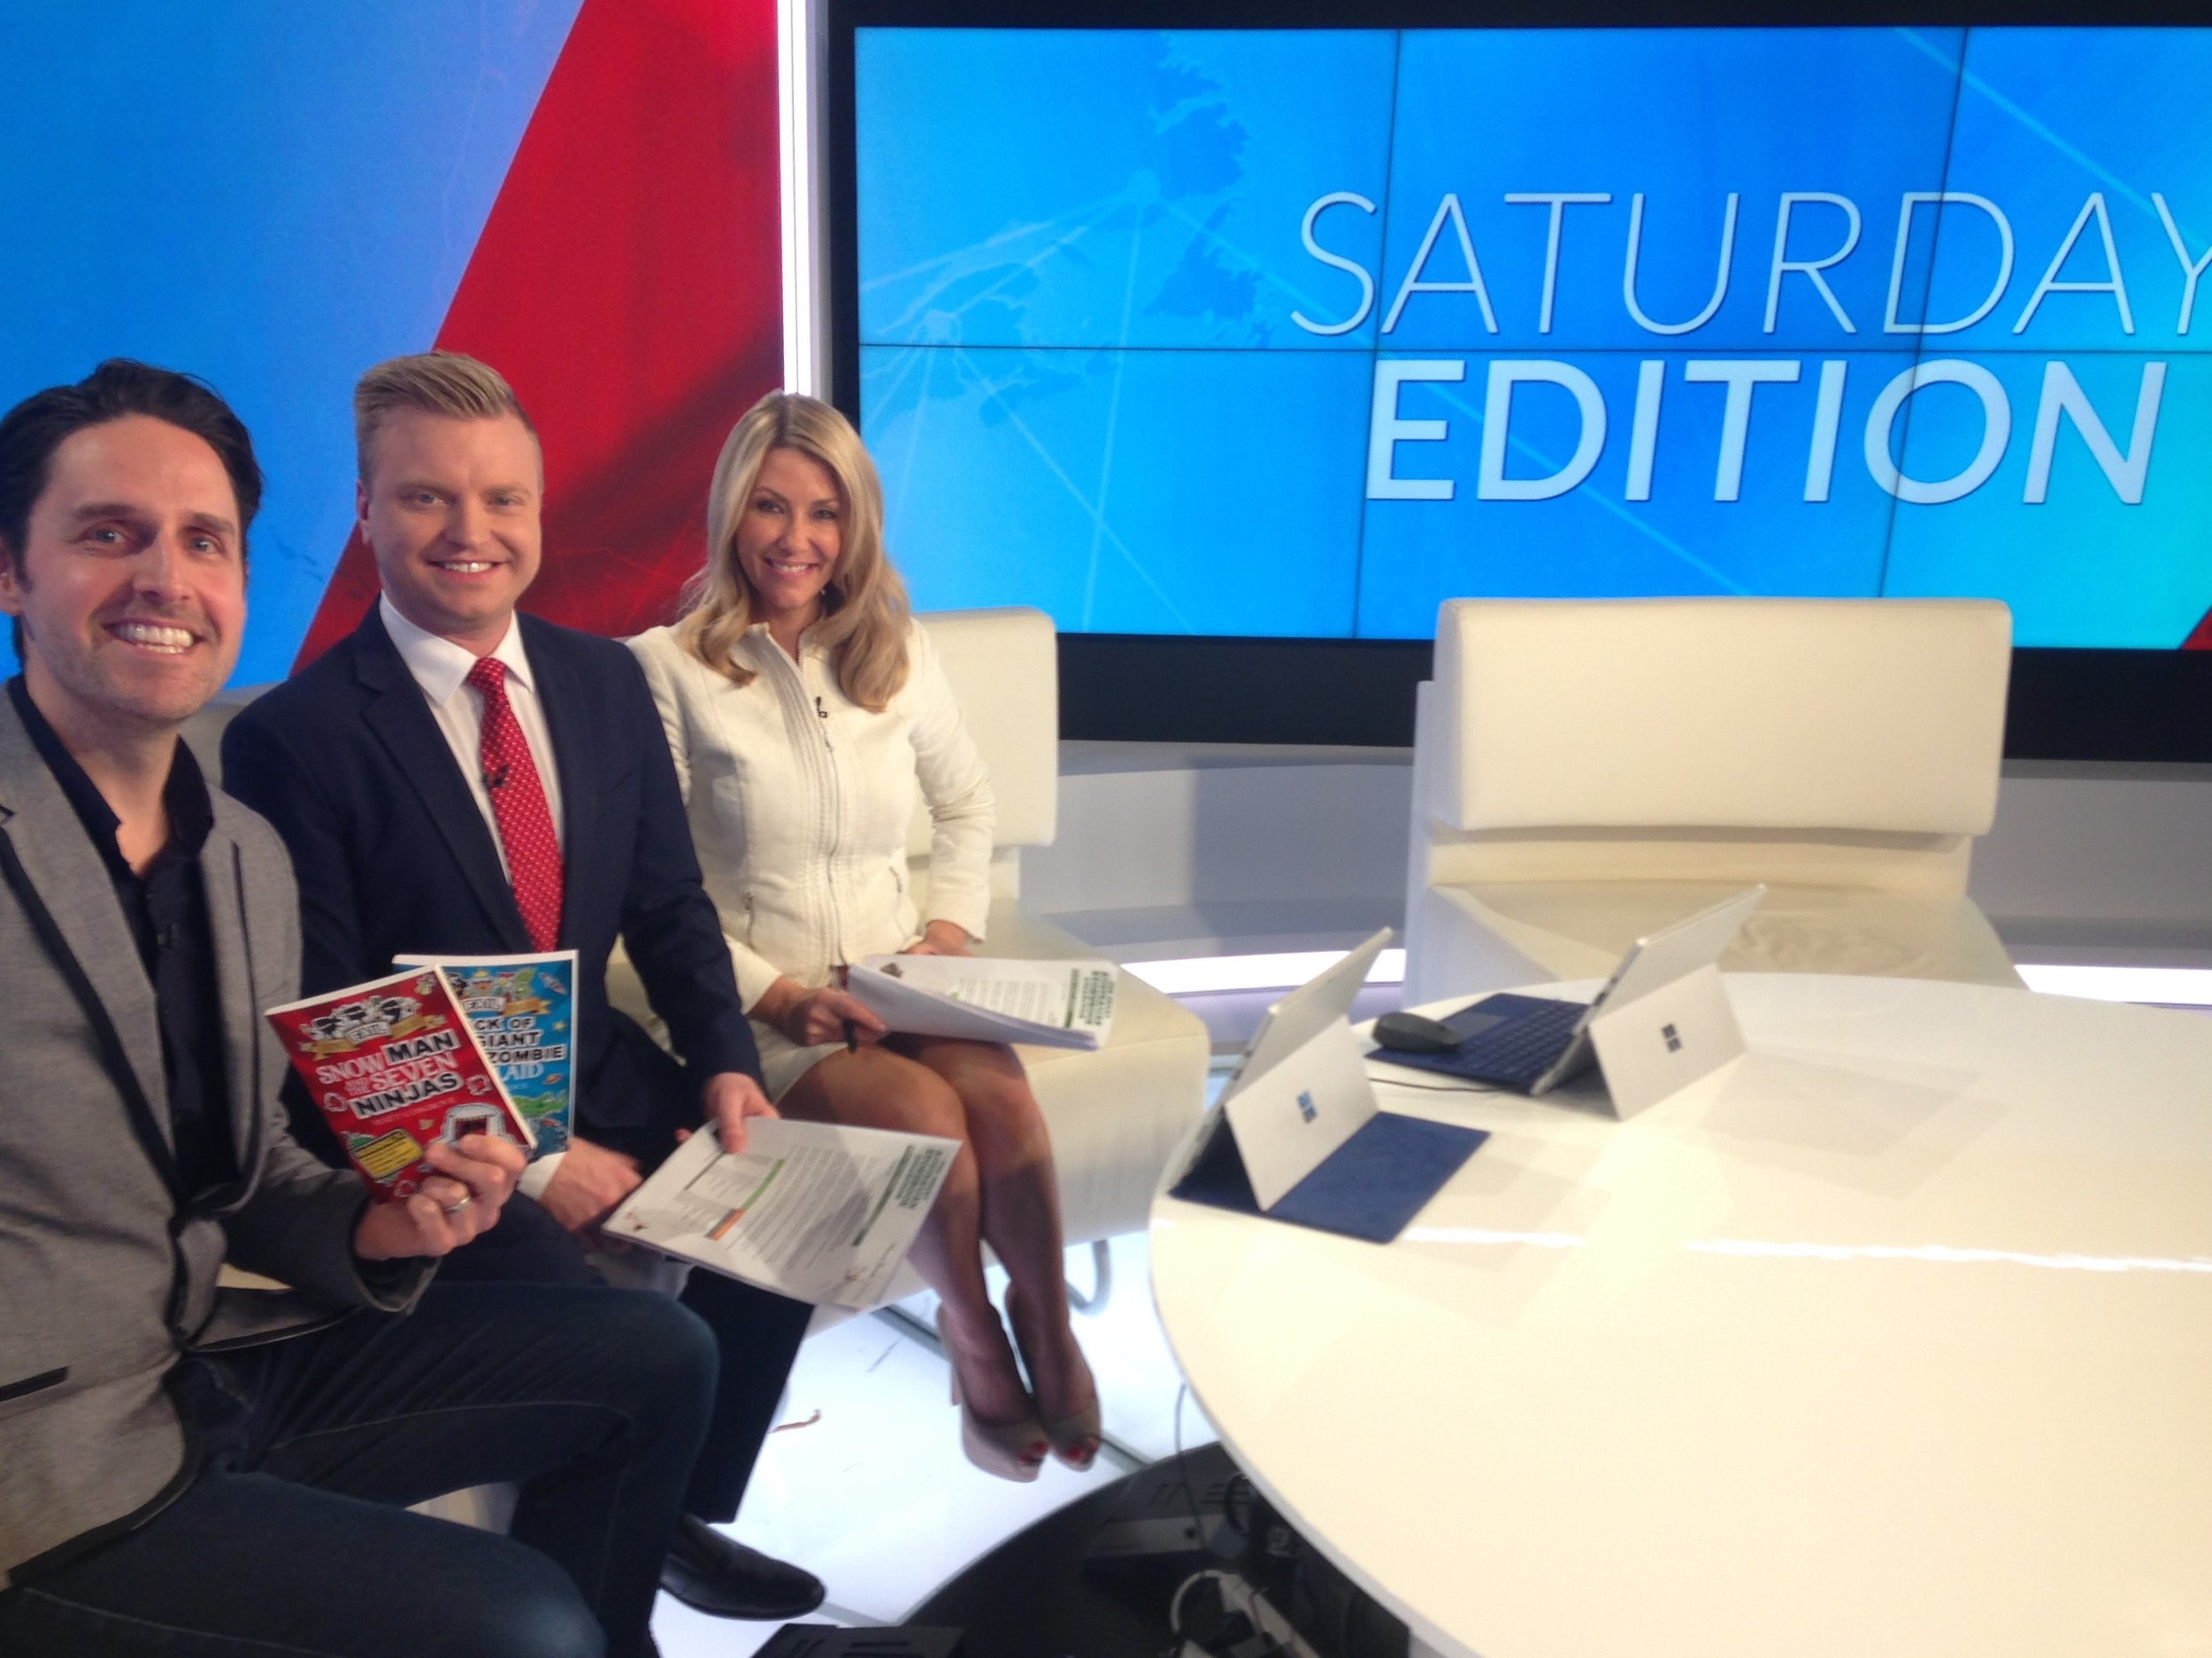 Author and Illustrator, Matt Cosgrove, on the set of SkyNews Saturday Edition with Greg Thomson and Jaynie Seal.